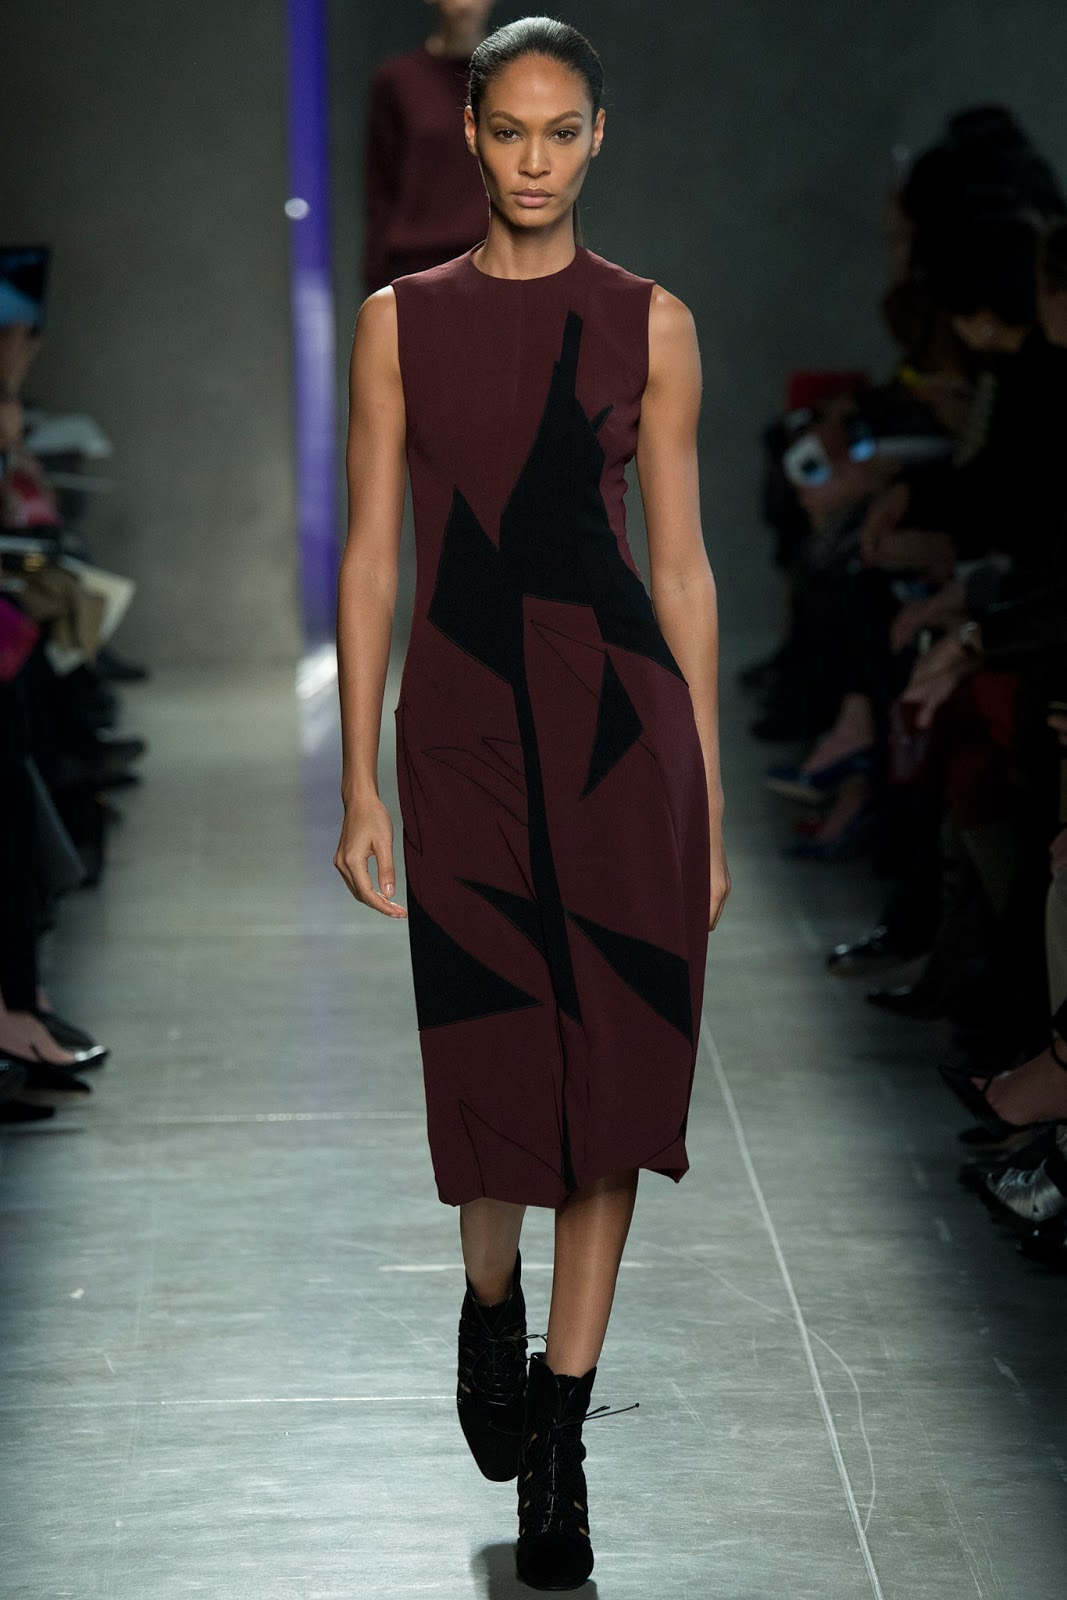 Bottega Veneta Fall 2014 Milan fashion week